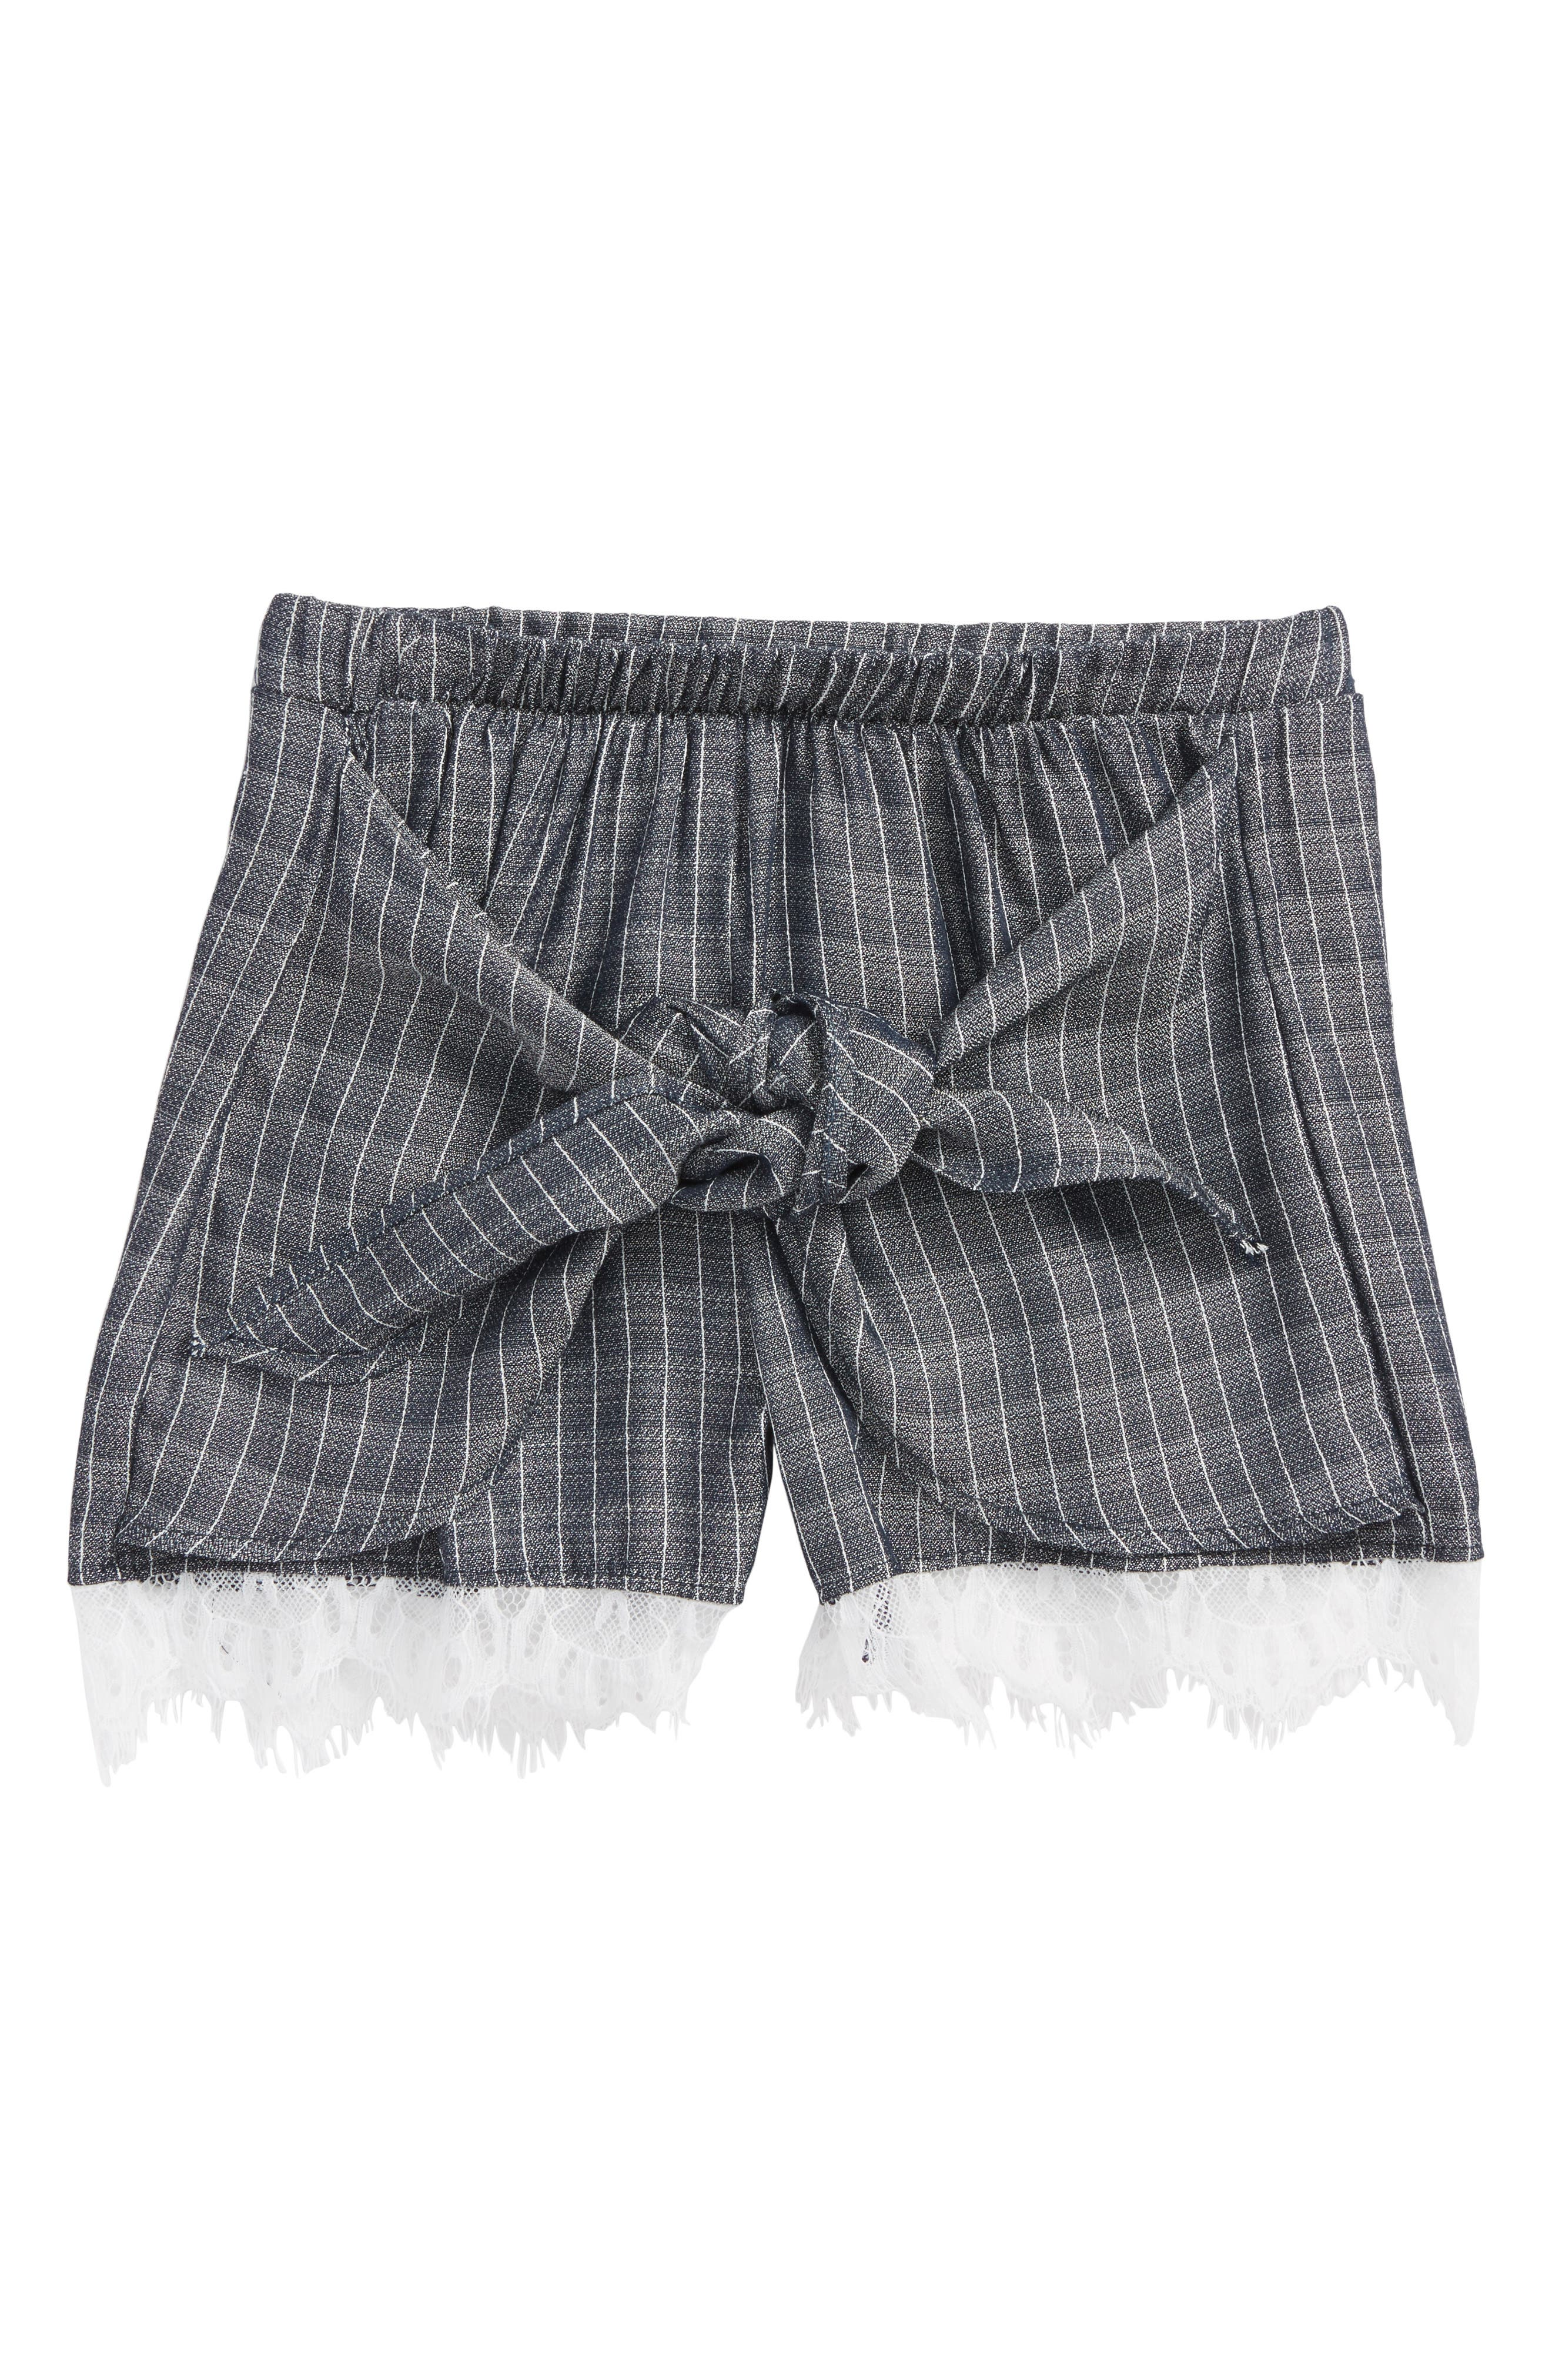 Alternate Image 1 Selected - Kiddo Lace Trim Tie Front Shorts (Big Girls)